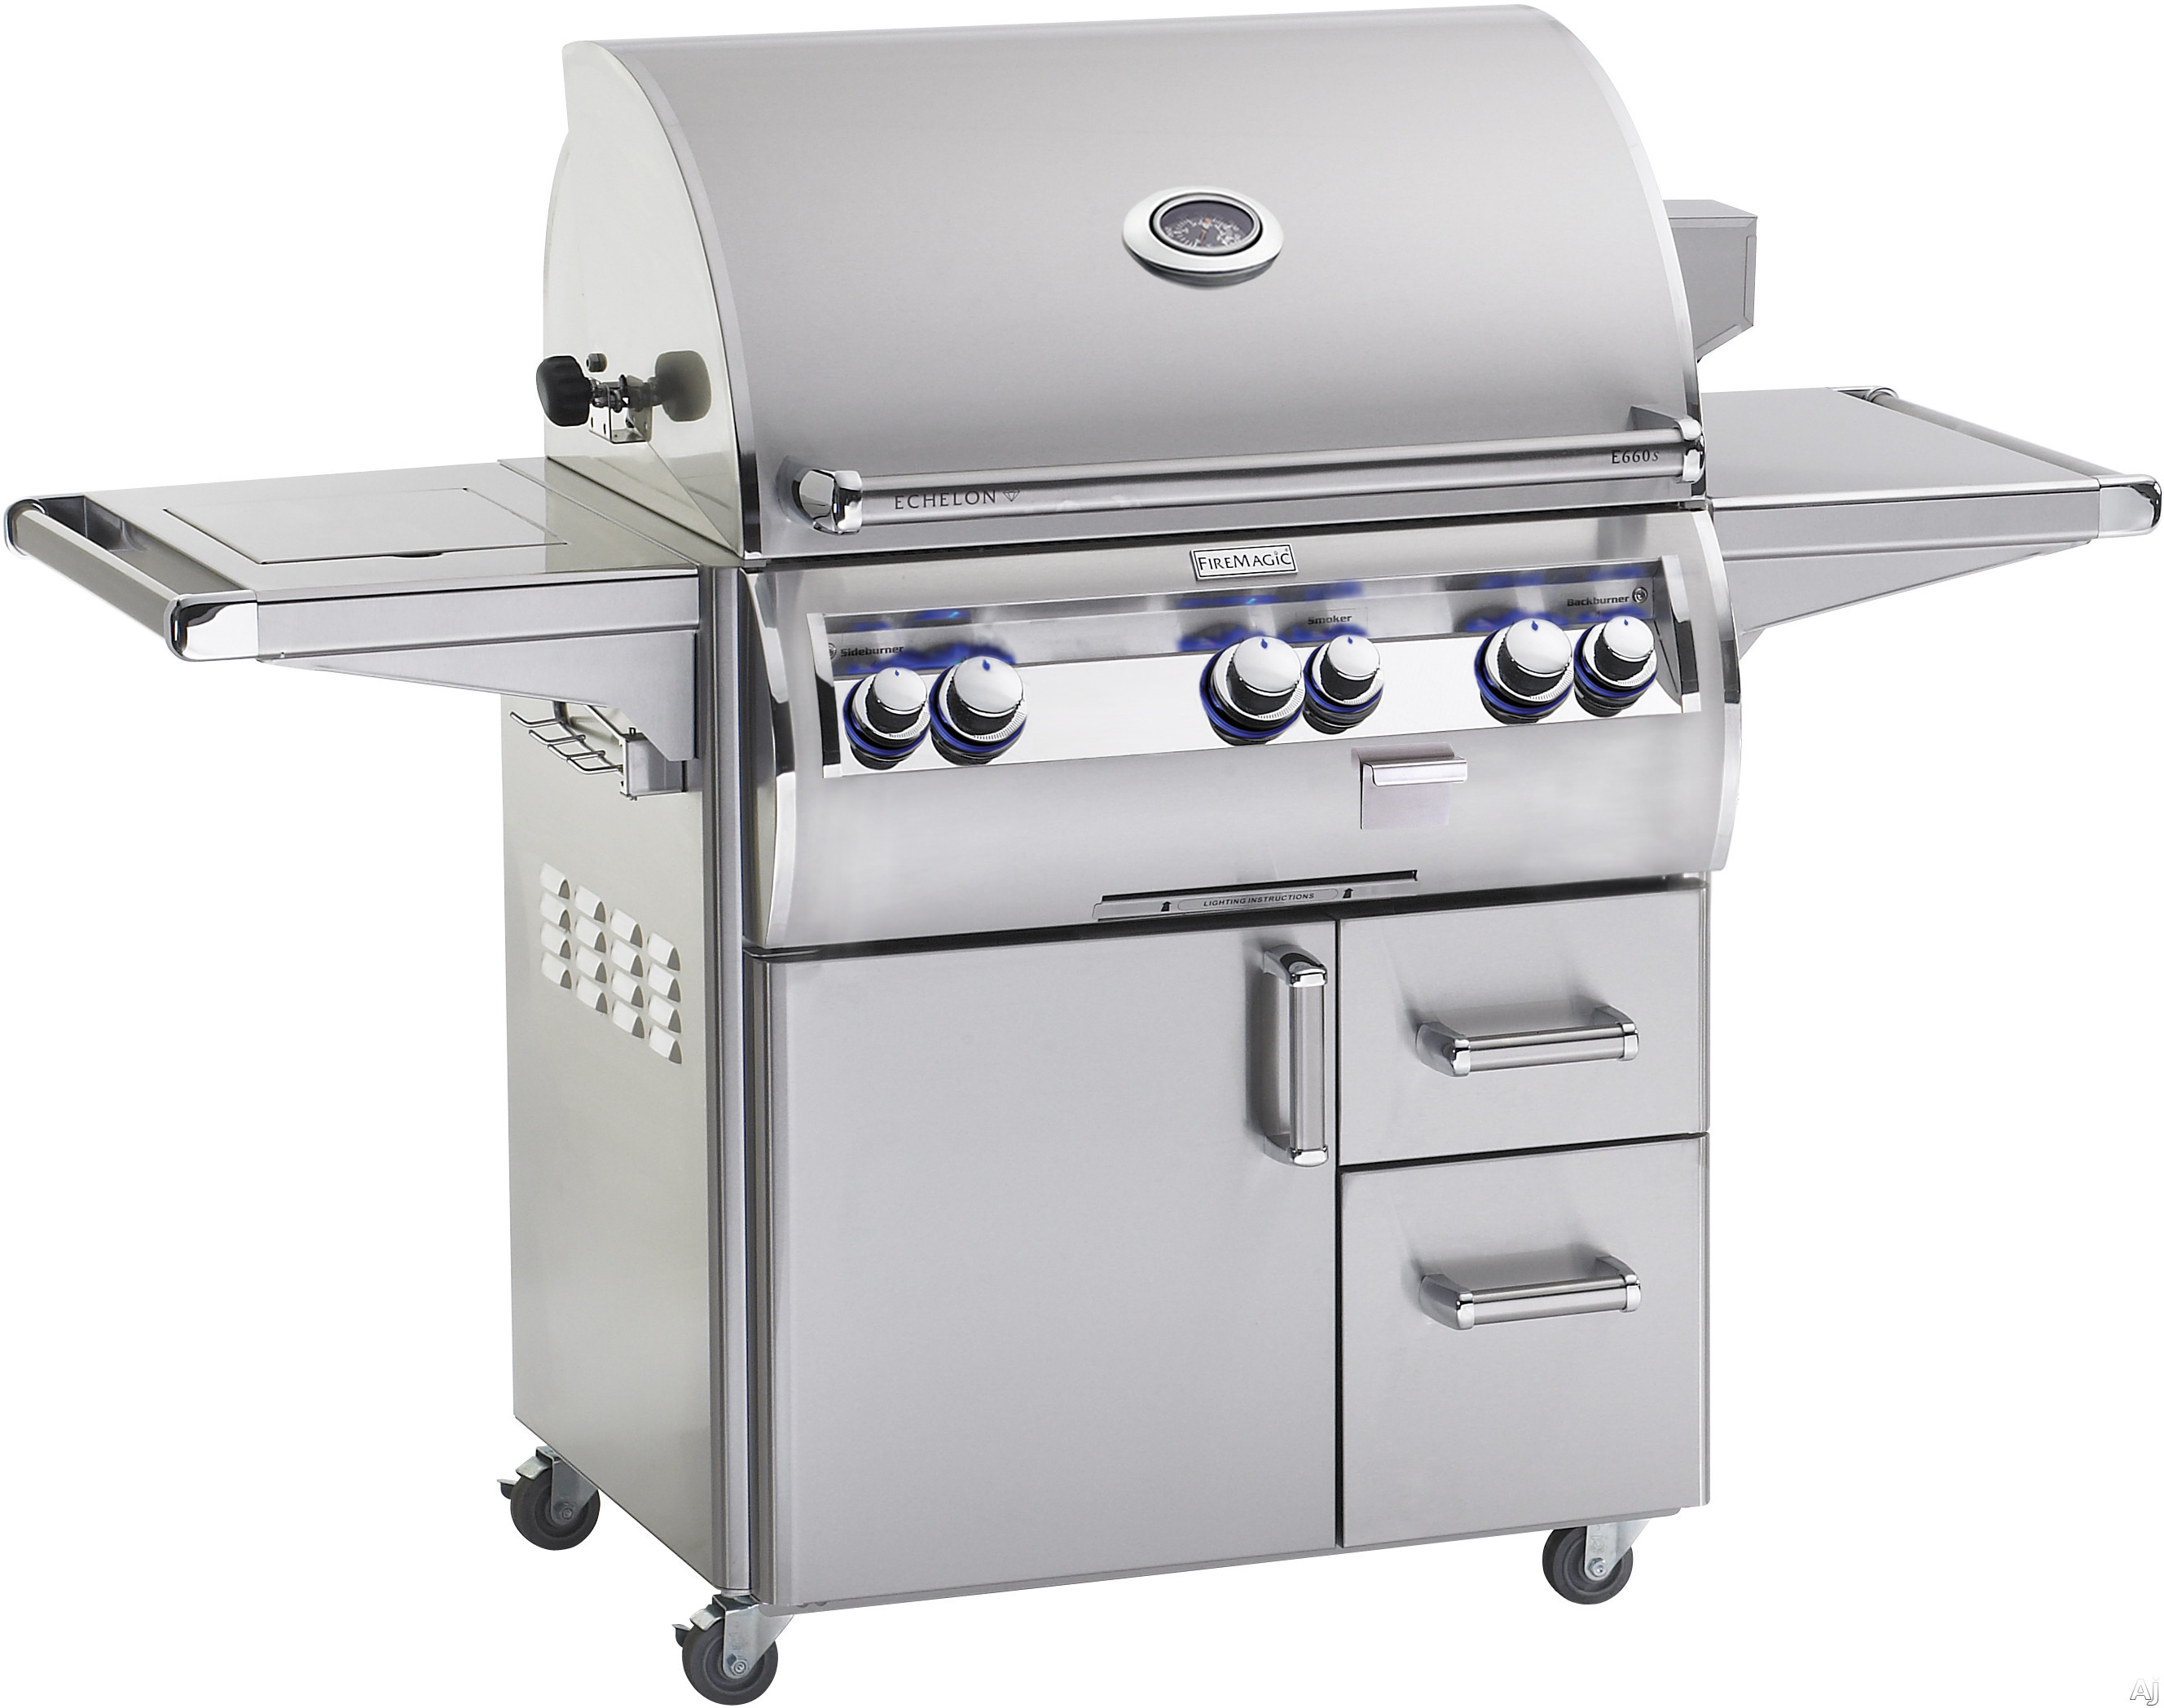 Fire Magic Echelon Collection E660S4EAN62 68 Inch Freestanding Analog Gas Grill with 660 sq. in. Cooking Surface, 78,000 BTU Stainless Steel Primary Burners, 11,000 Secondary Burners and 3,000 Smoker